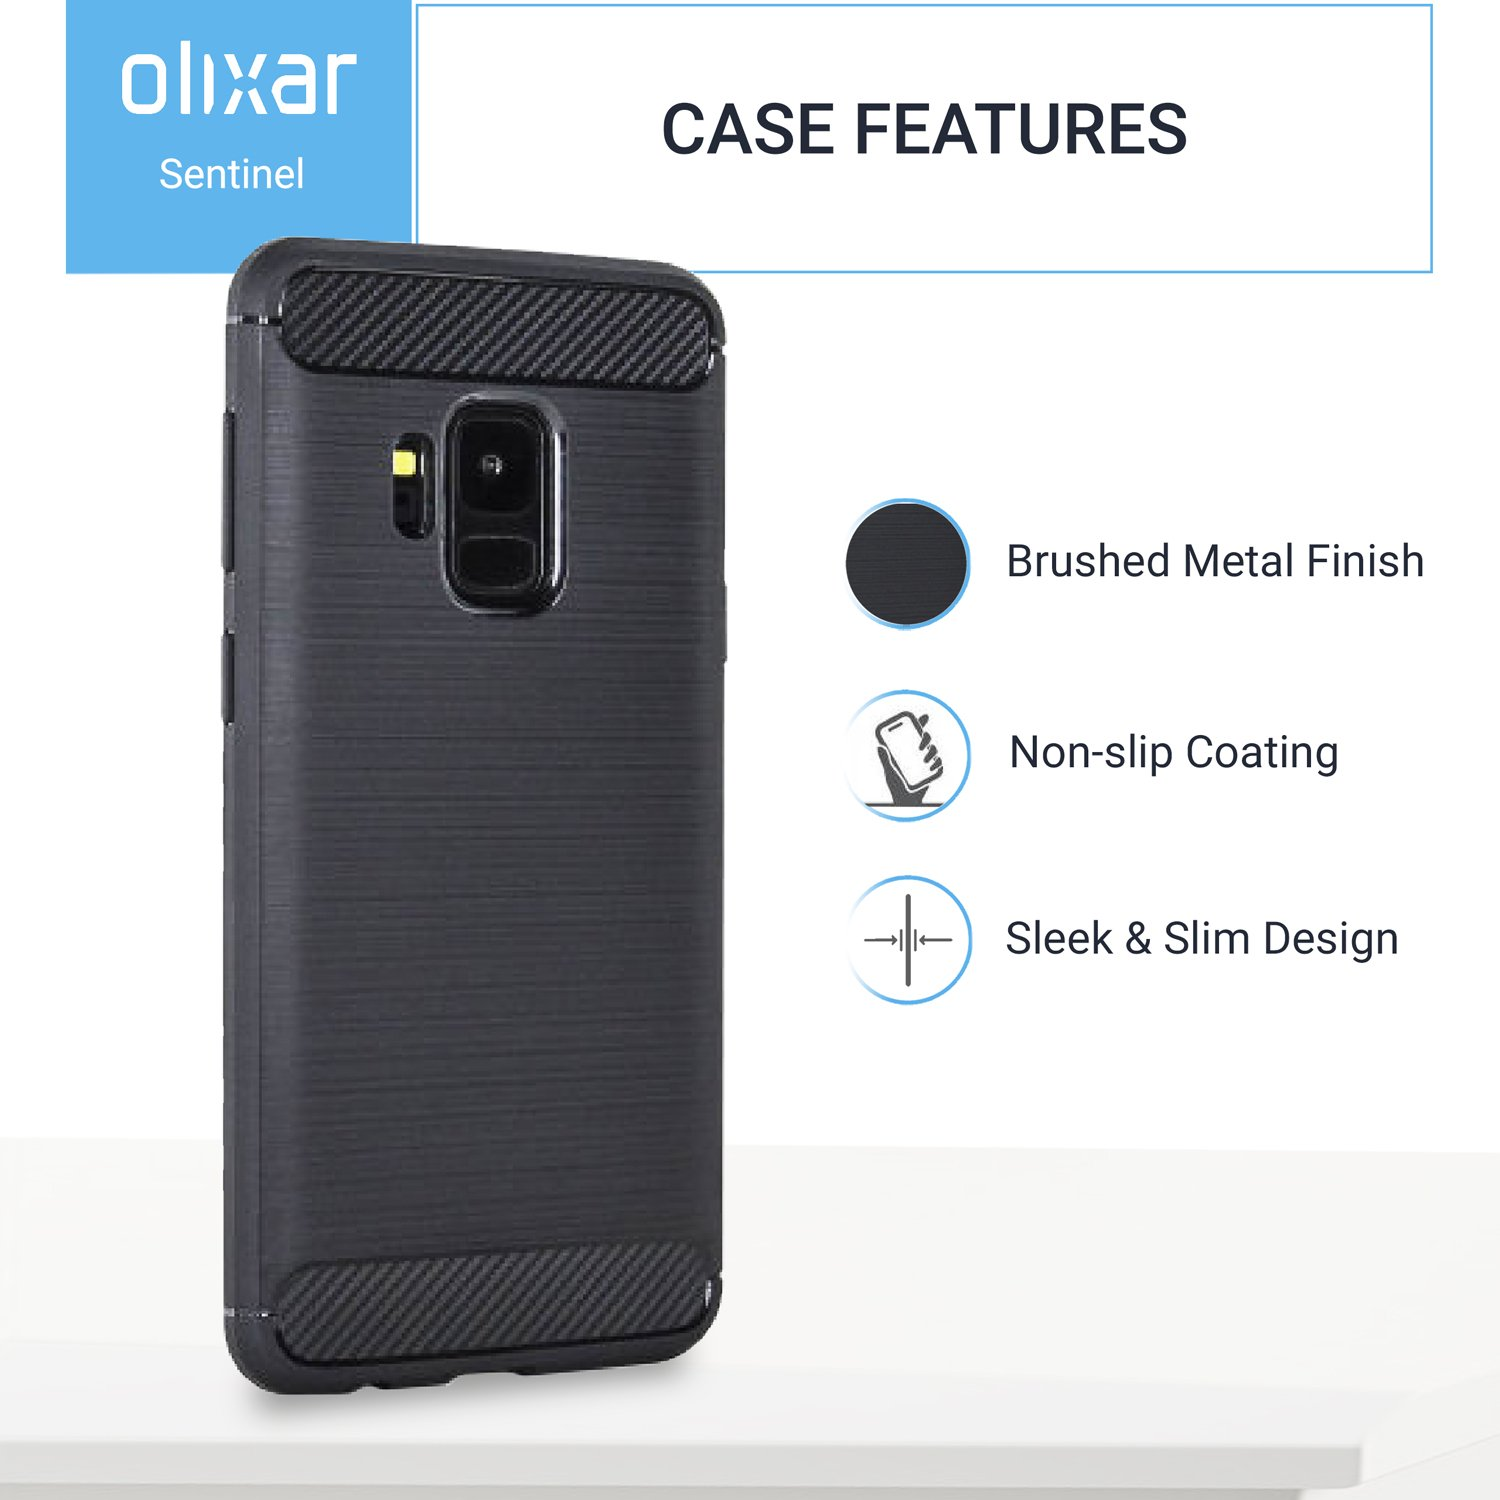 Olixar Samsung Galaxy S9 Case With Screen Protector Cell Phone Shield Charger 360 Degree Full Body Cover Edge To Tempered Glass Front And Back Tough Rugged Protection Wireless Charging Compatible